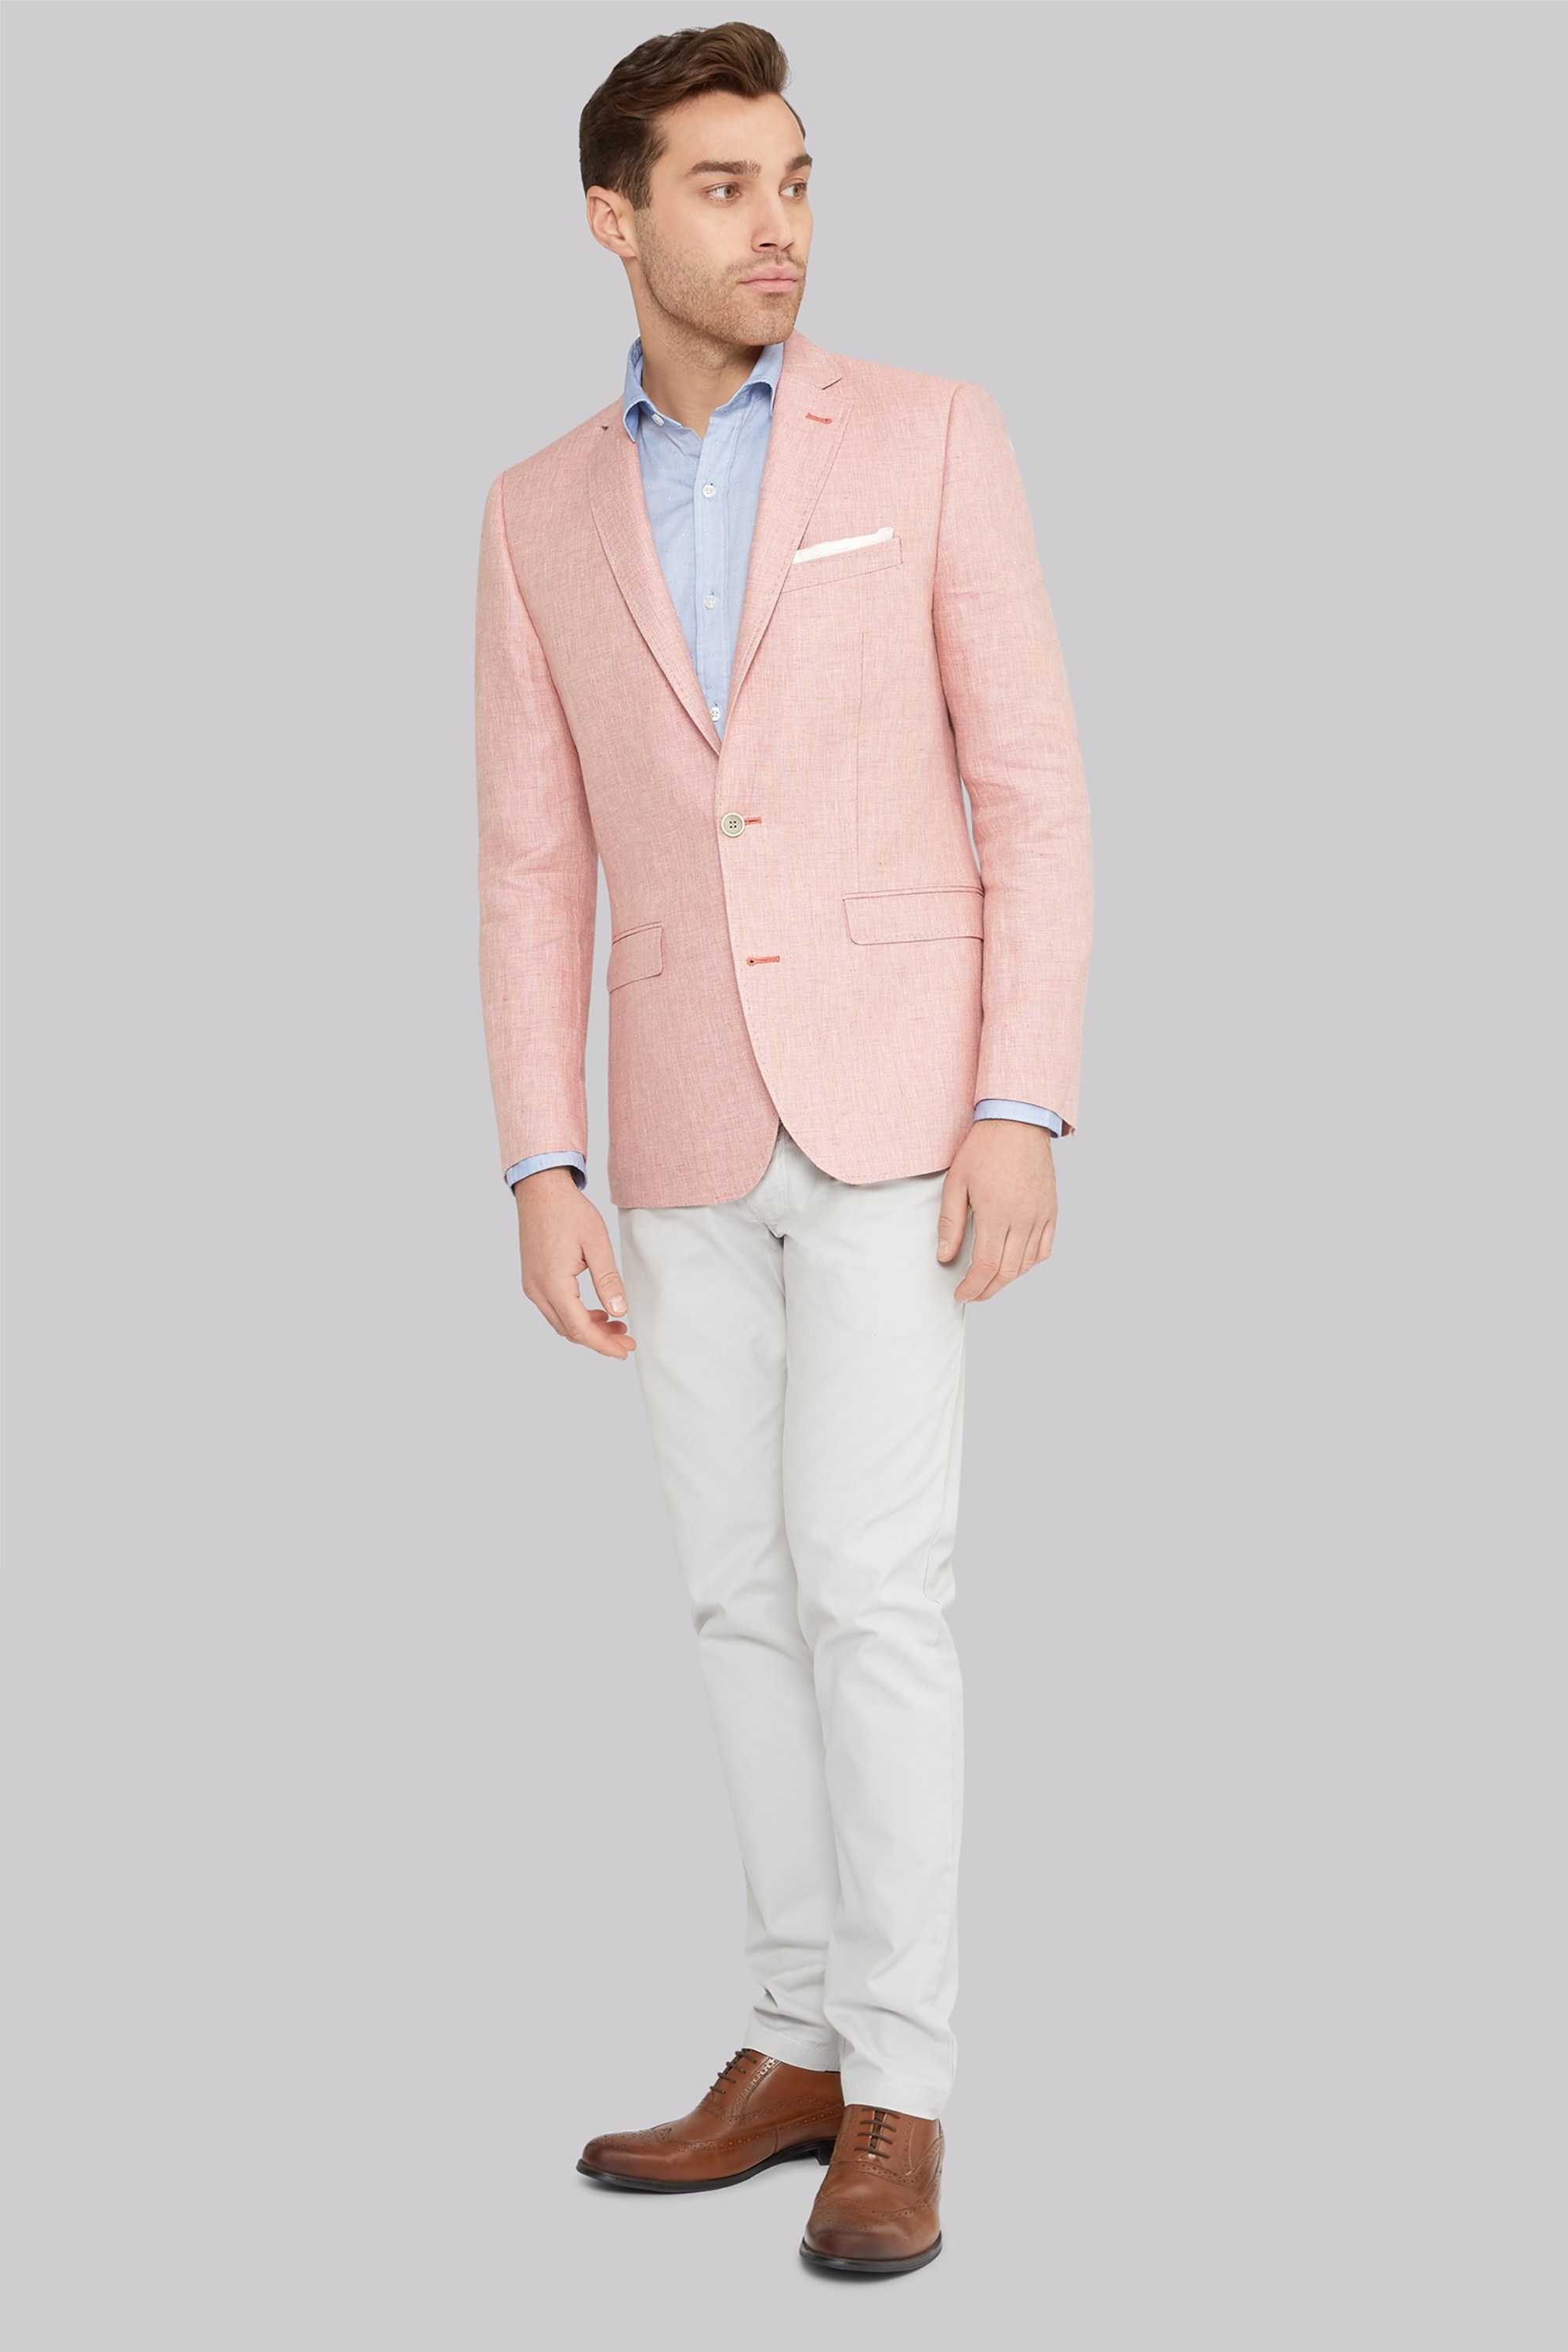 1851 Tailored Fit Pink Linen Jacket